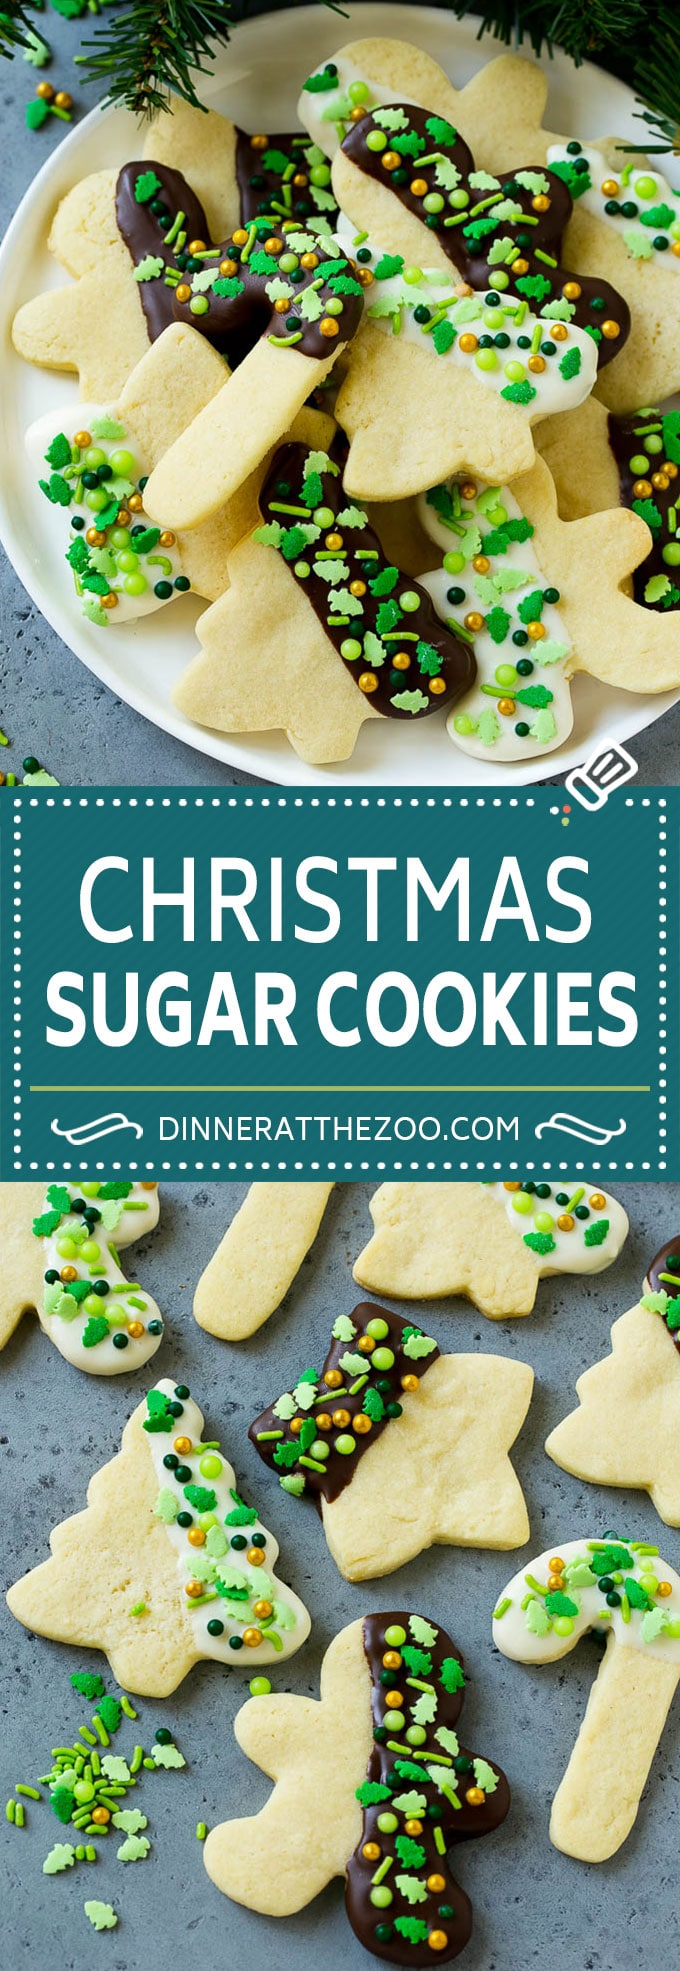 Christmas Sugar Cookies Recipe | Cut Out Cookies Recipe | Sprinkle Cookies | Chocolate Dipped Cookies #cookies #Christmas #chocolate #sprinkles #baking #dessert #dinneratthezoo